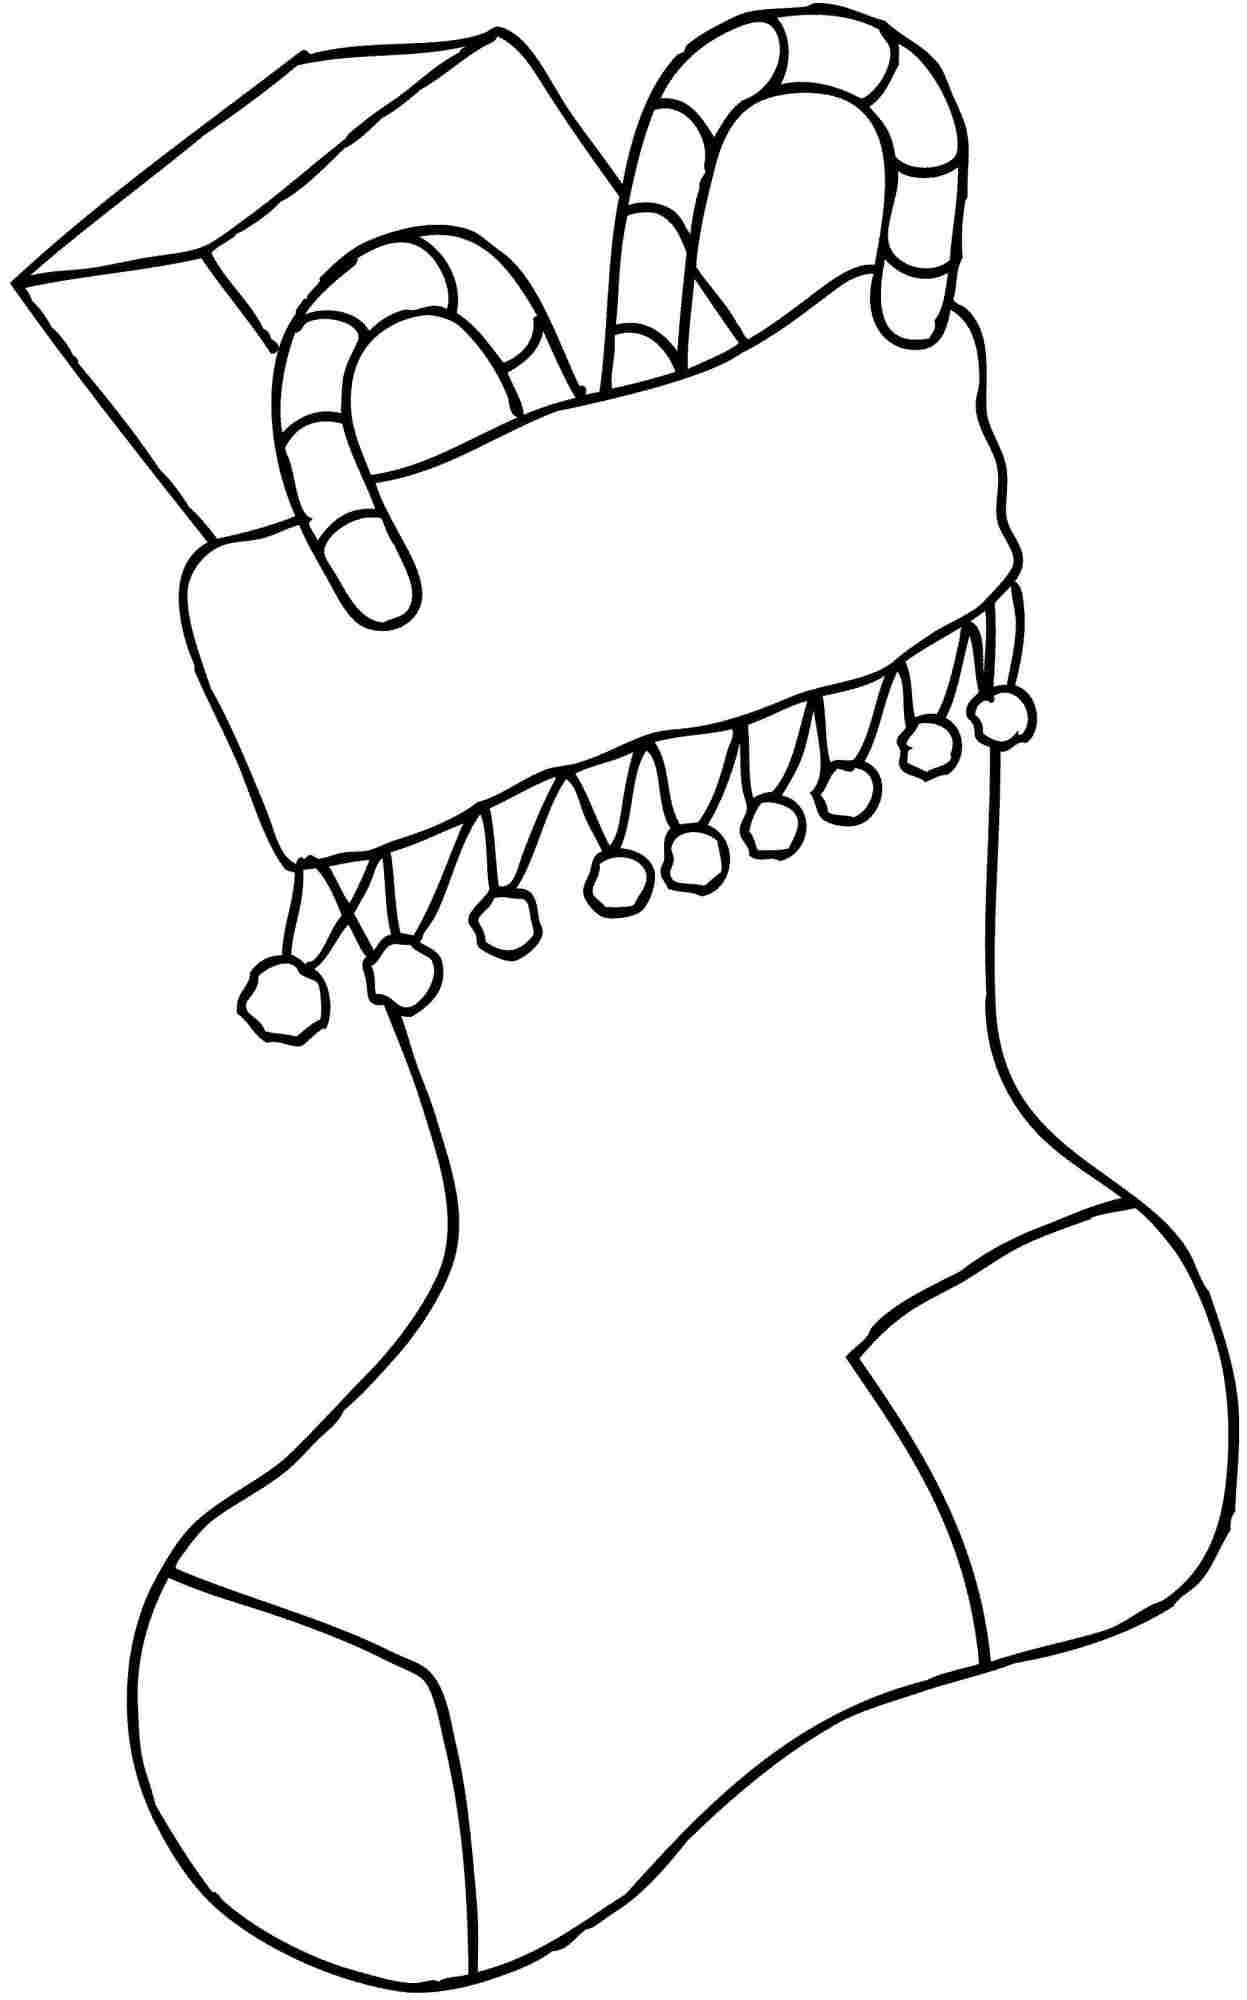 Christmas Socks Drawing